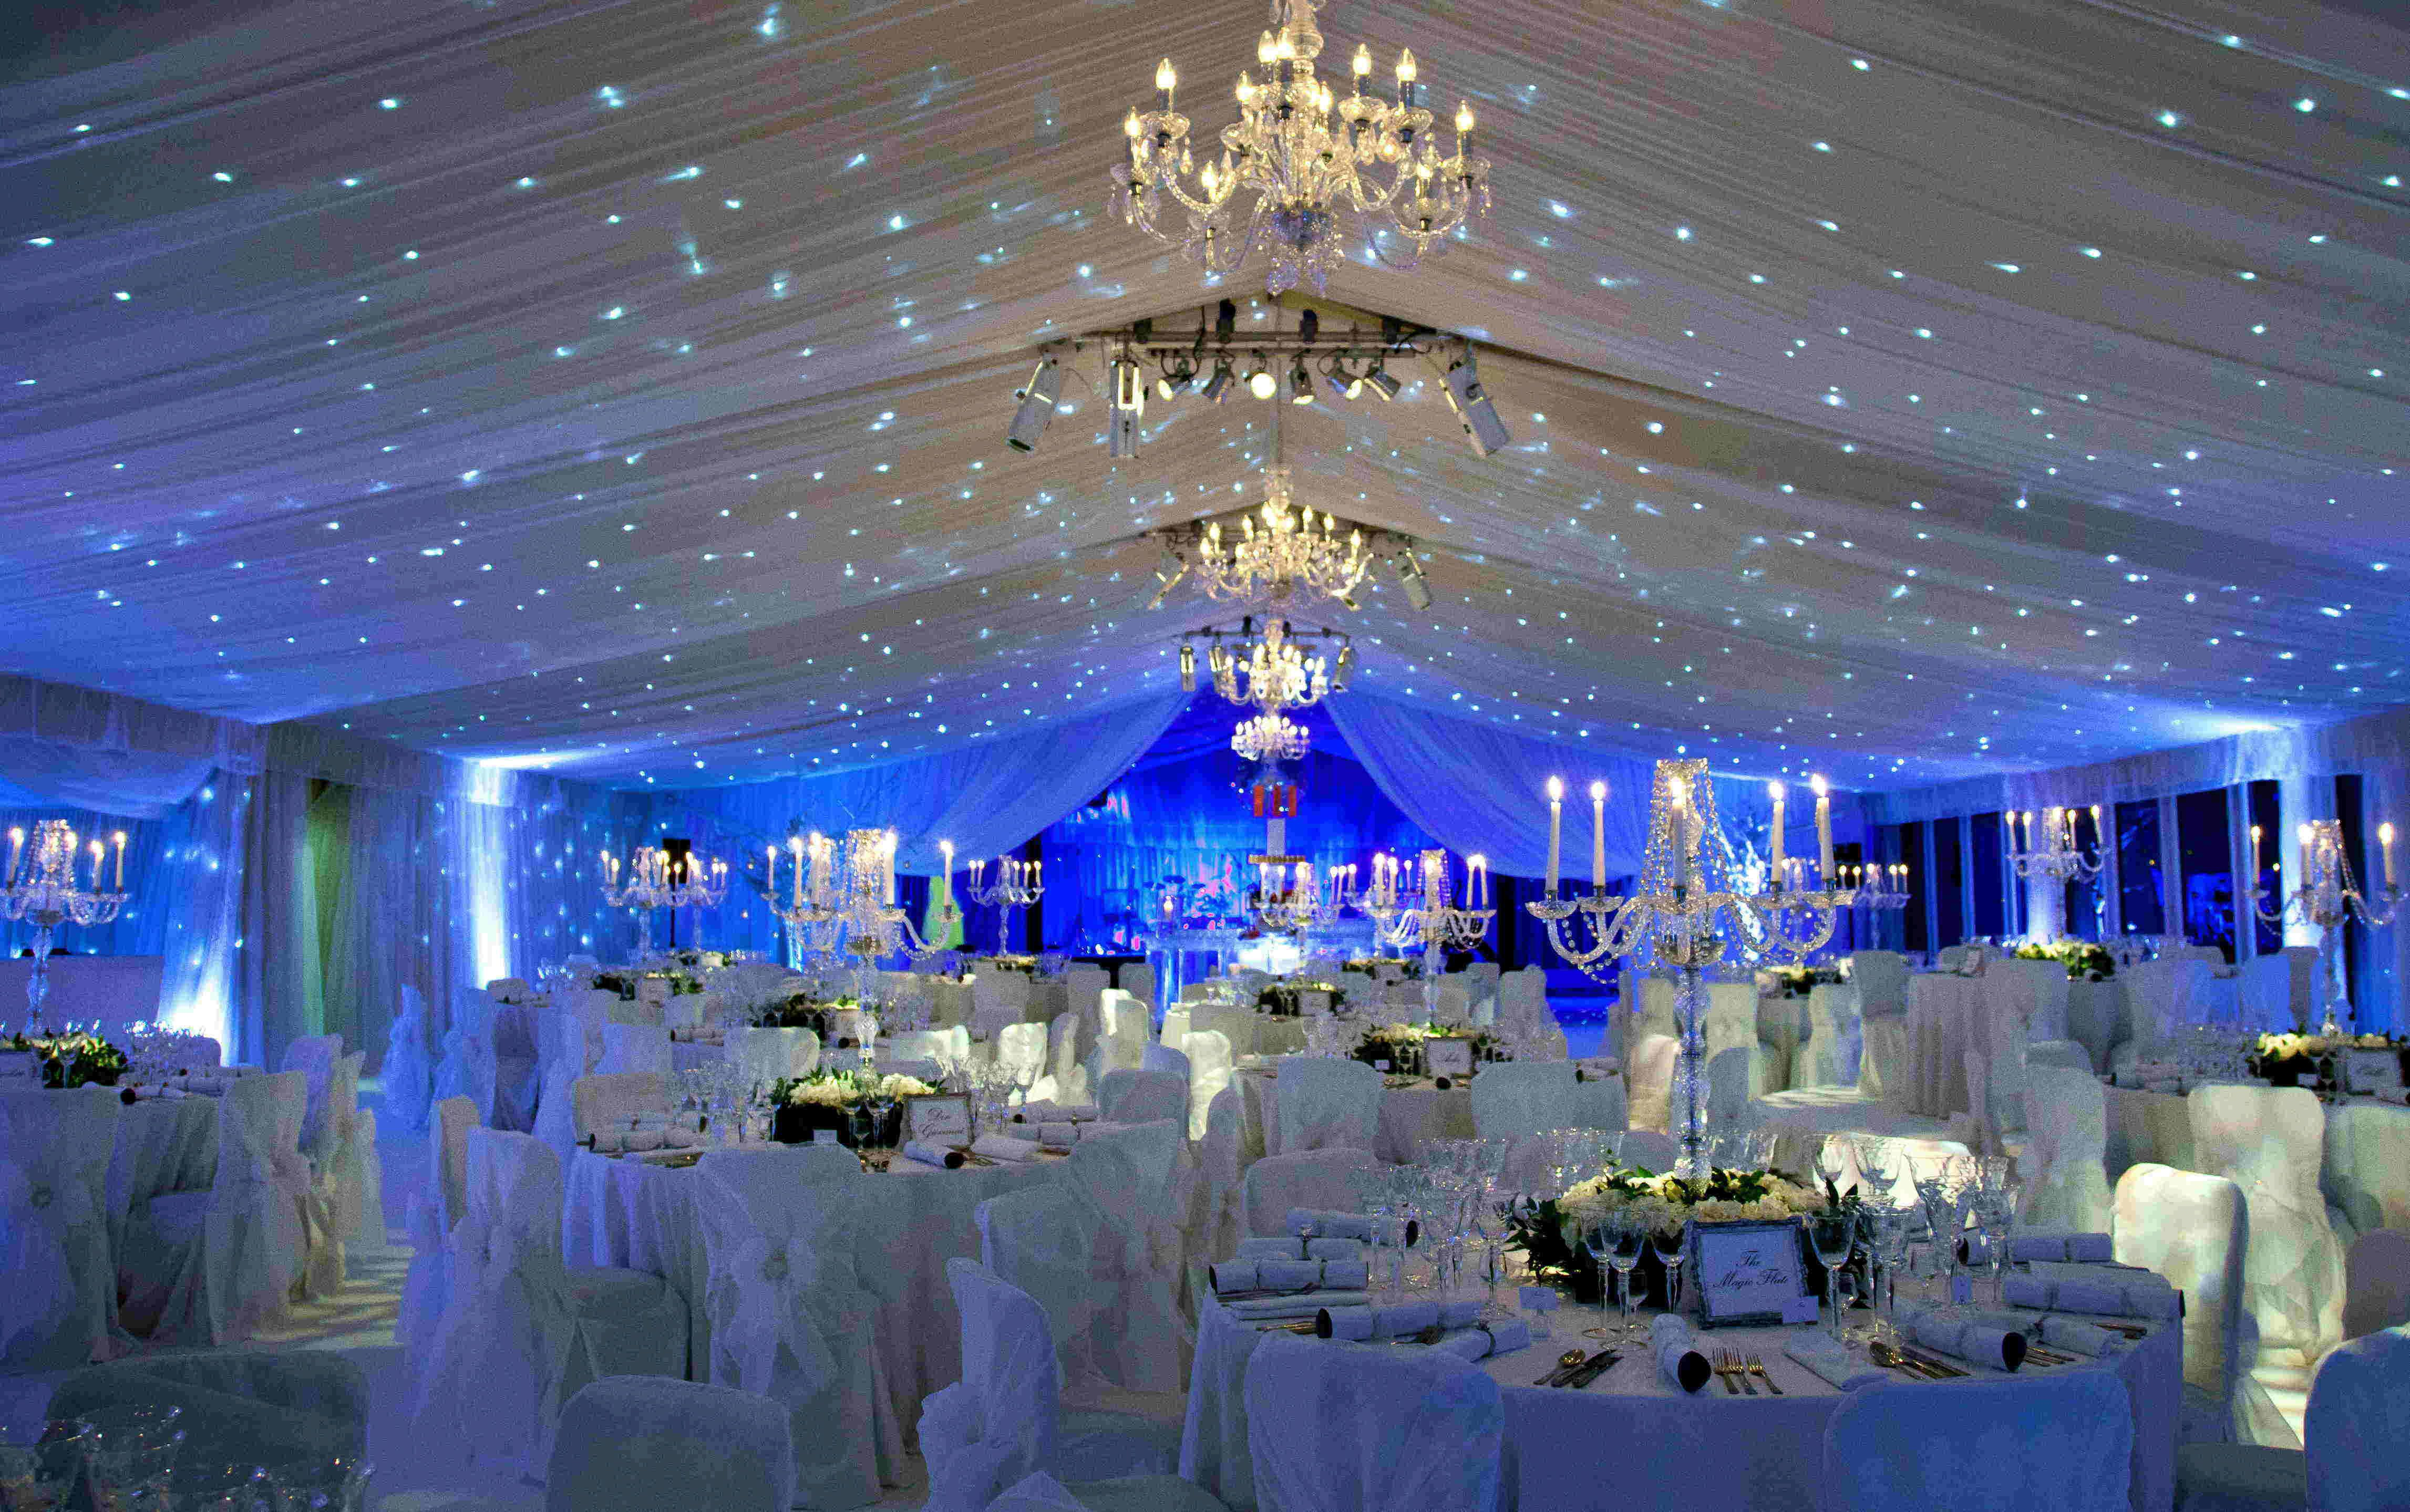 Ideas For Office Christmas Party Part - 22: Over The Top Winter Wonderland For A Corporate Christmas Party. I Would  Have Loved An Invite To This Event! | Winter Wonderland | Pinterest |  Winter, ...